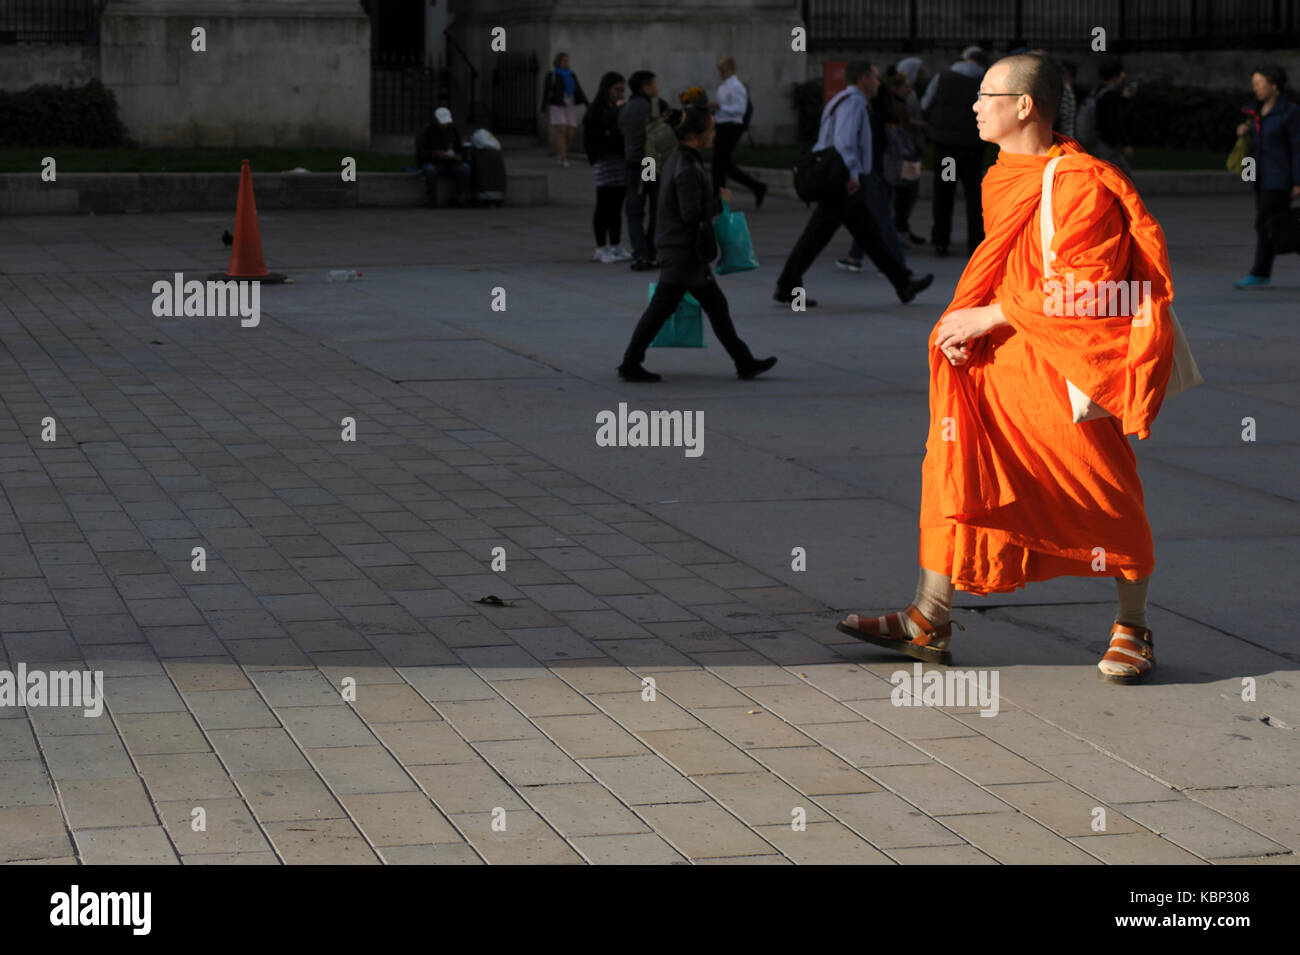 Two Buddhist monks are sightseeing in Trafalgar Square, they are taking pictures of each other. Stock Photo